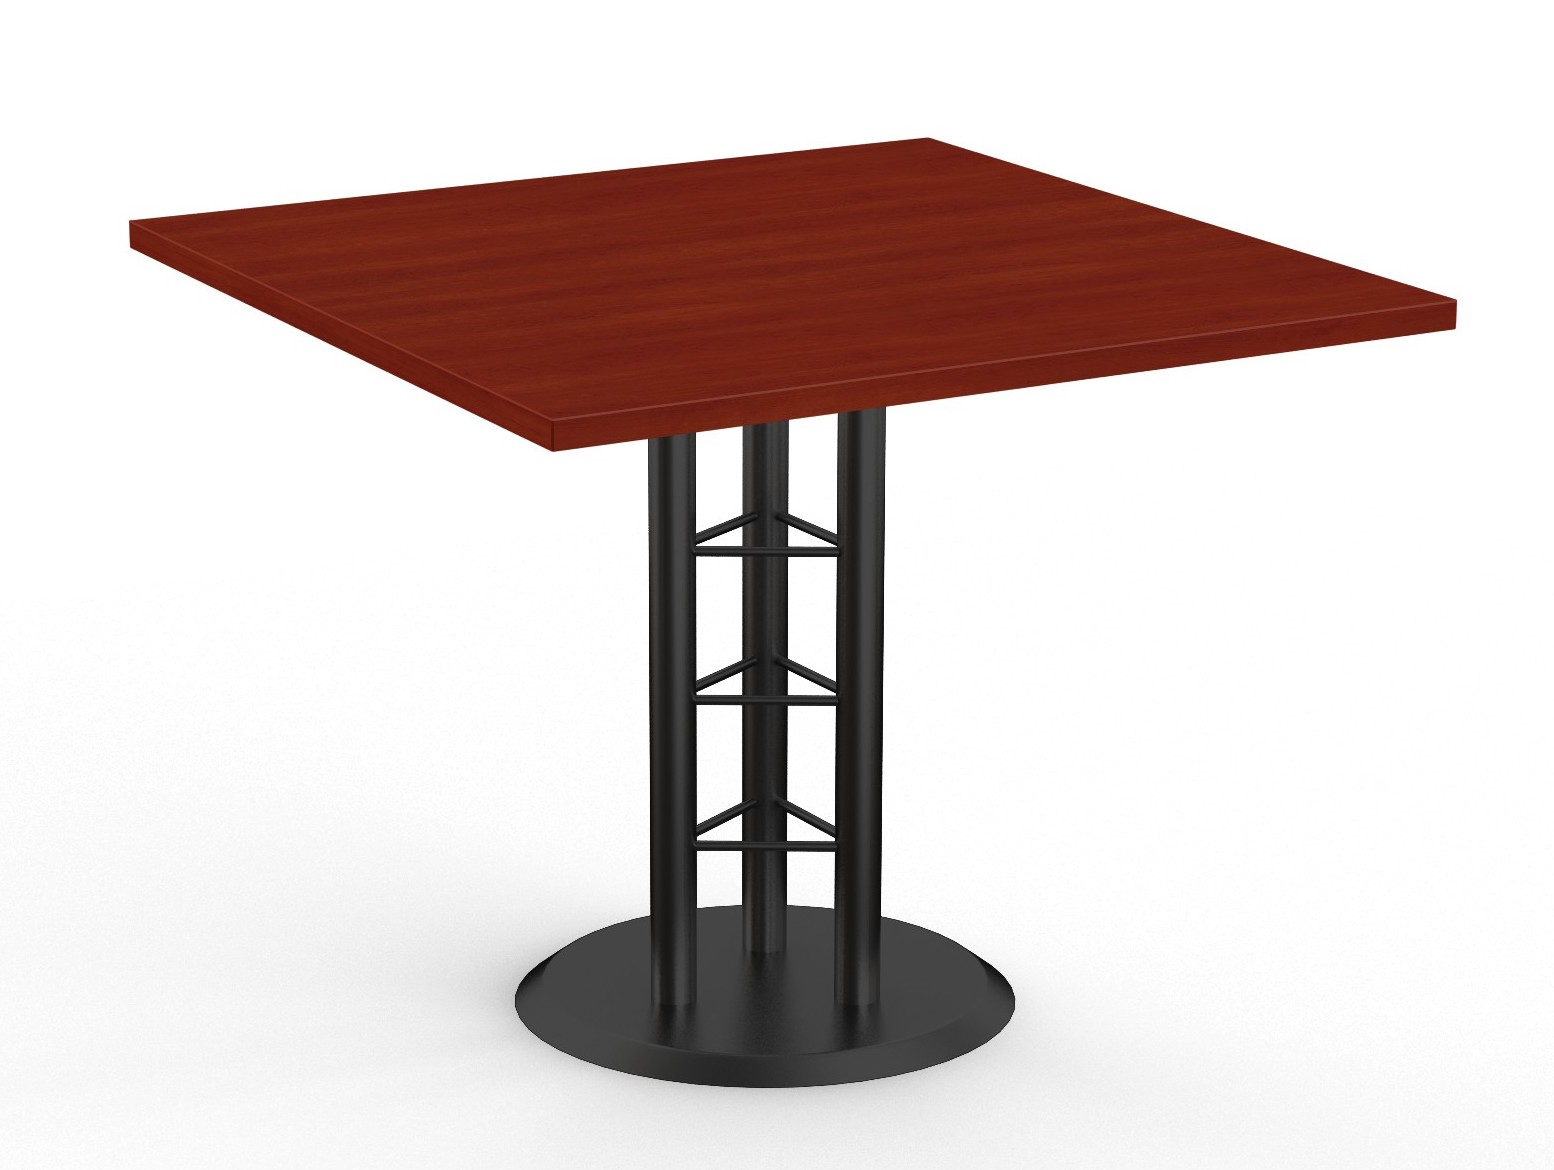 special-t success table in cherry